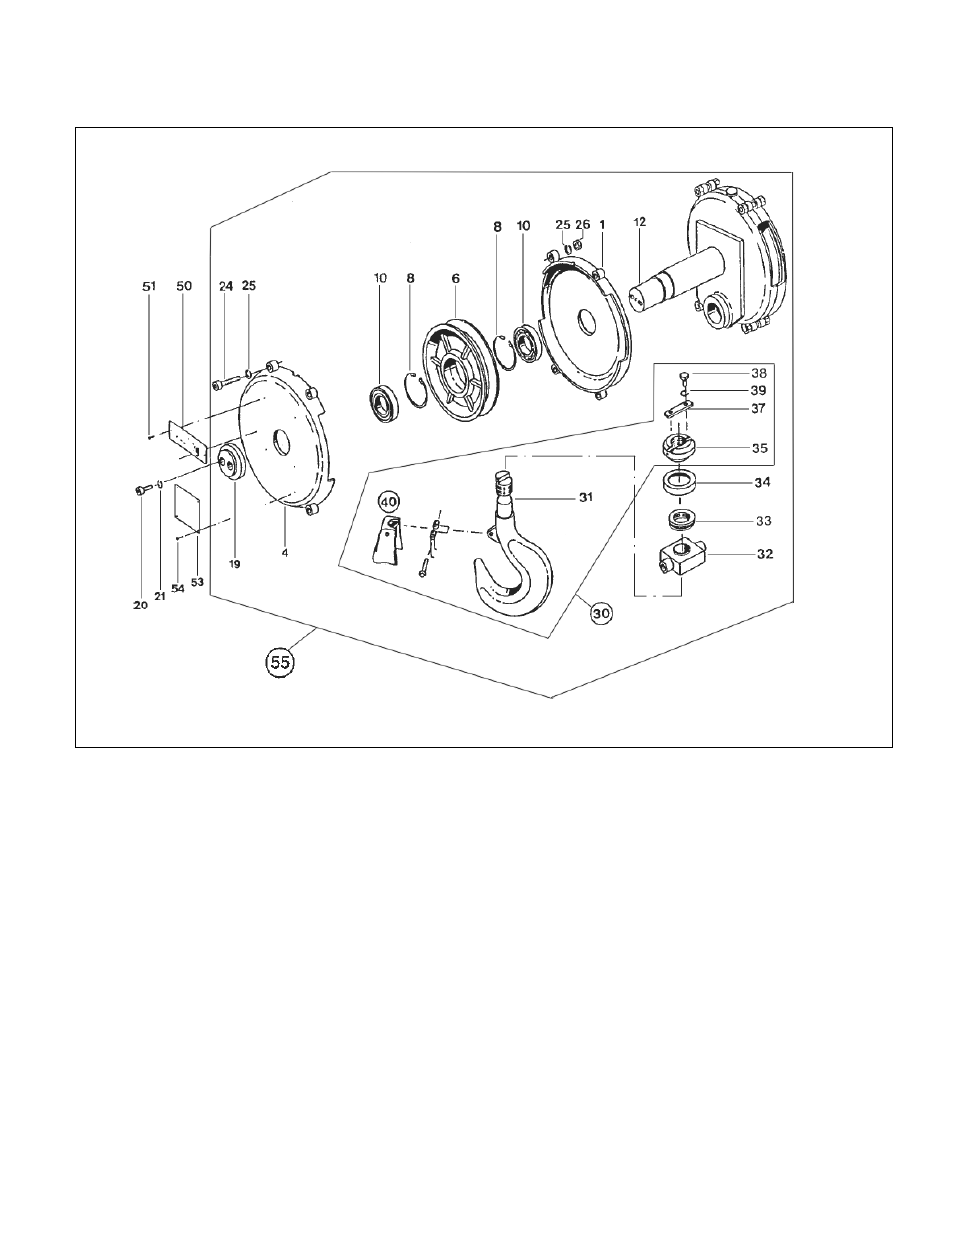 Harrington Hoists and Cranes RHN - Rhino Wire Rope Hoist User Manual | Page  89 /